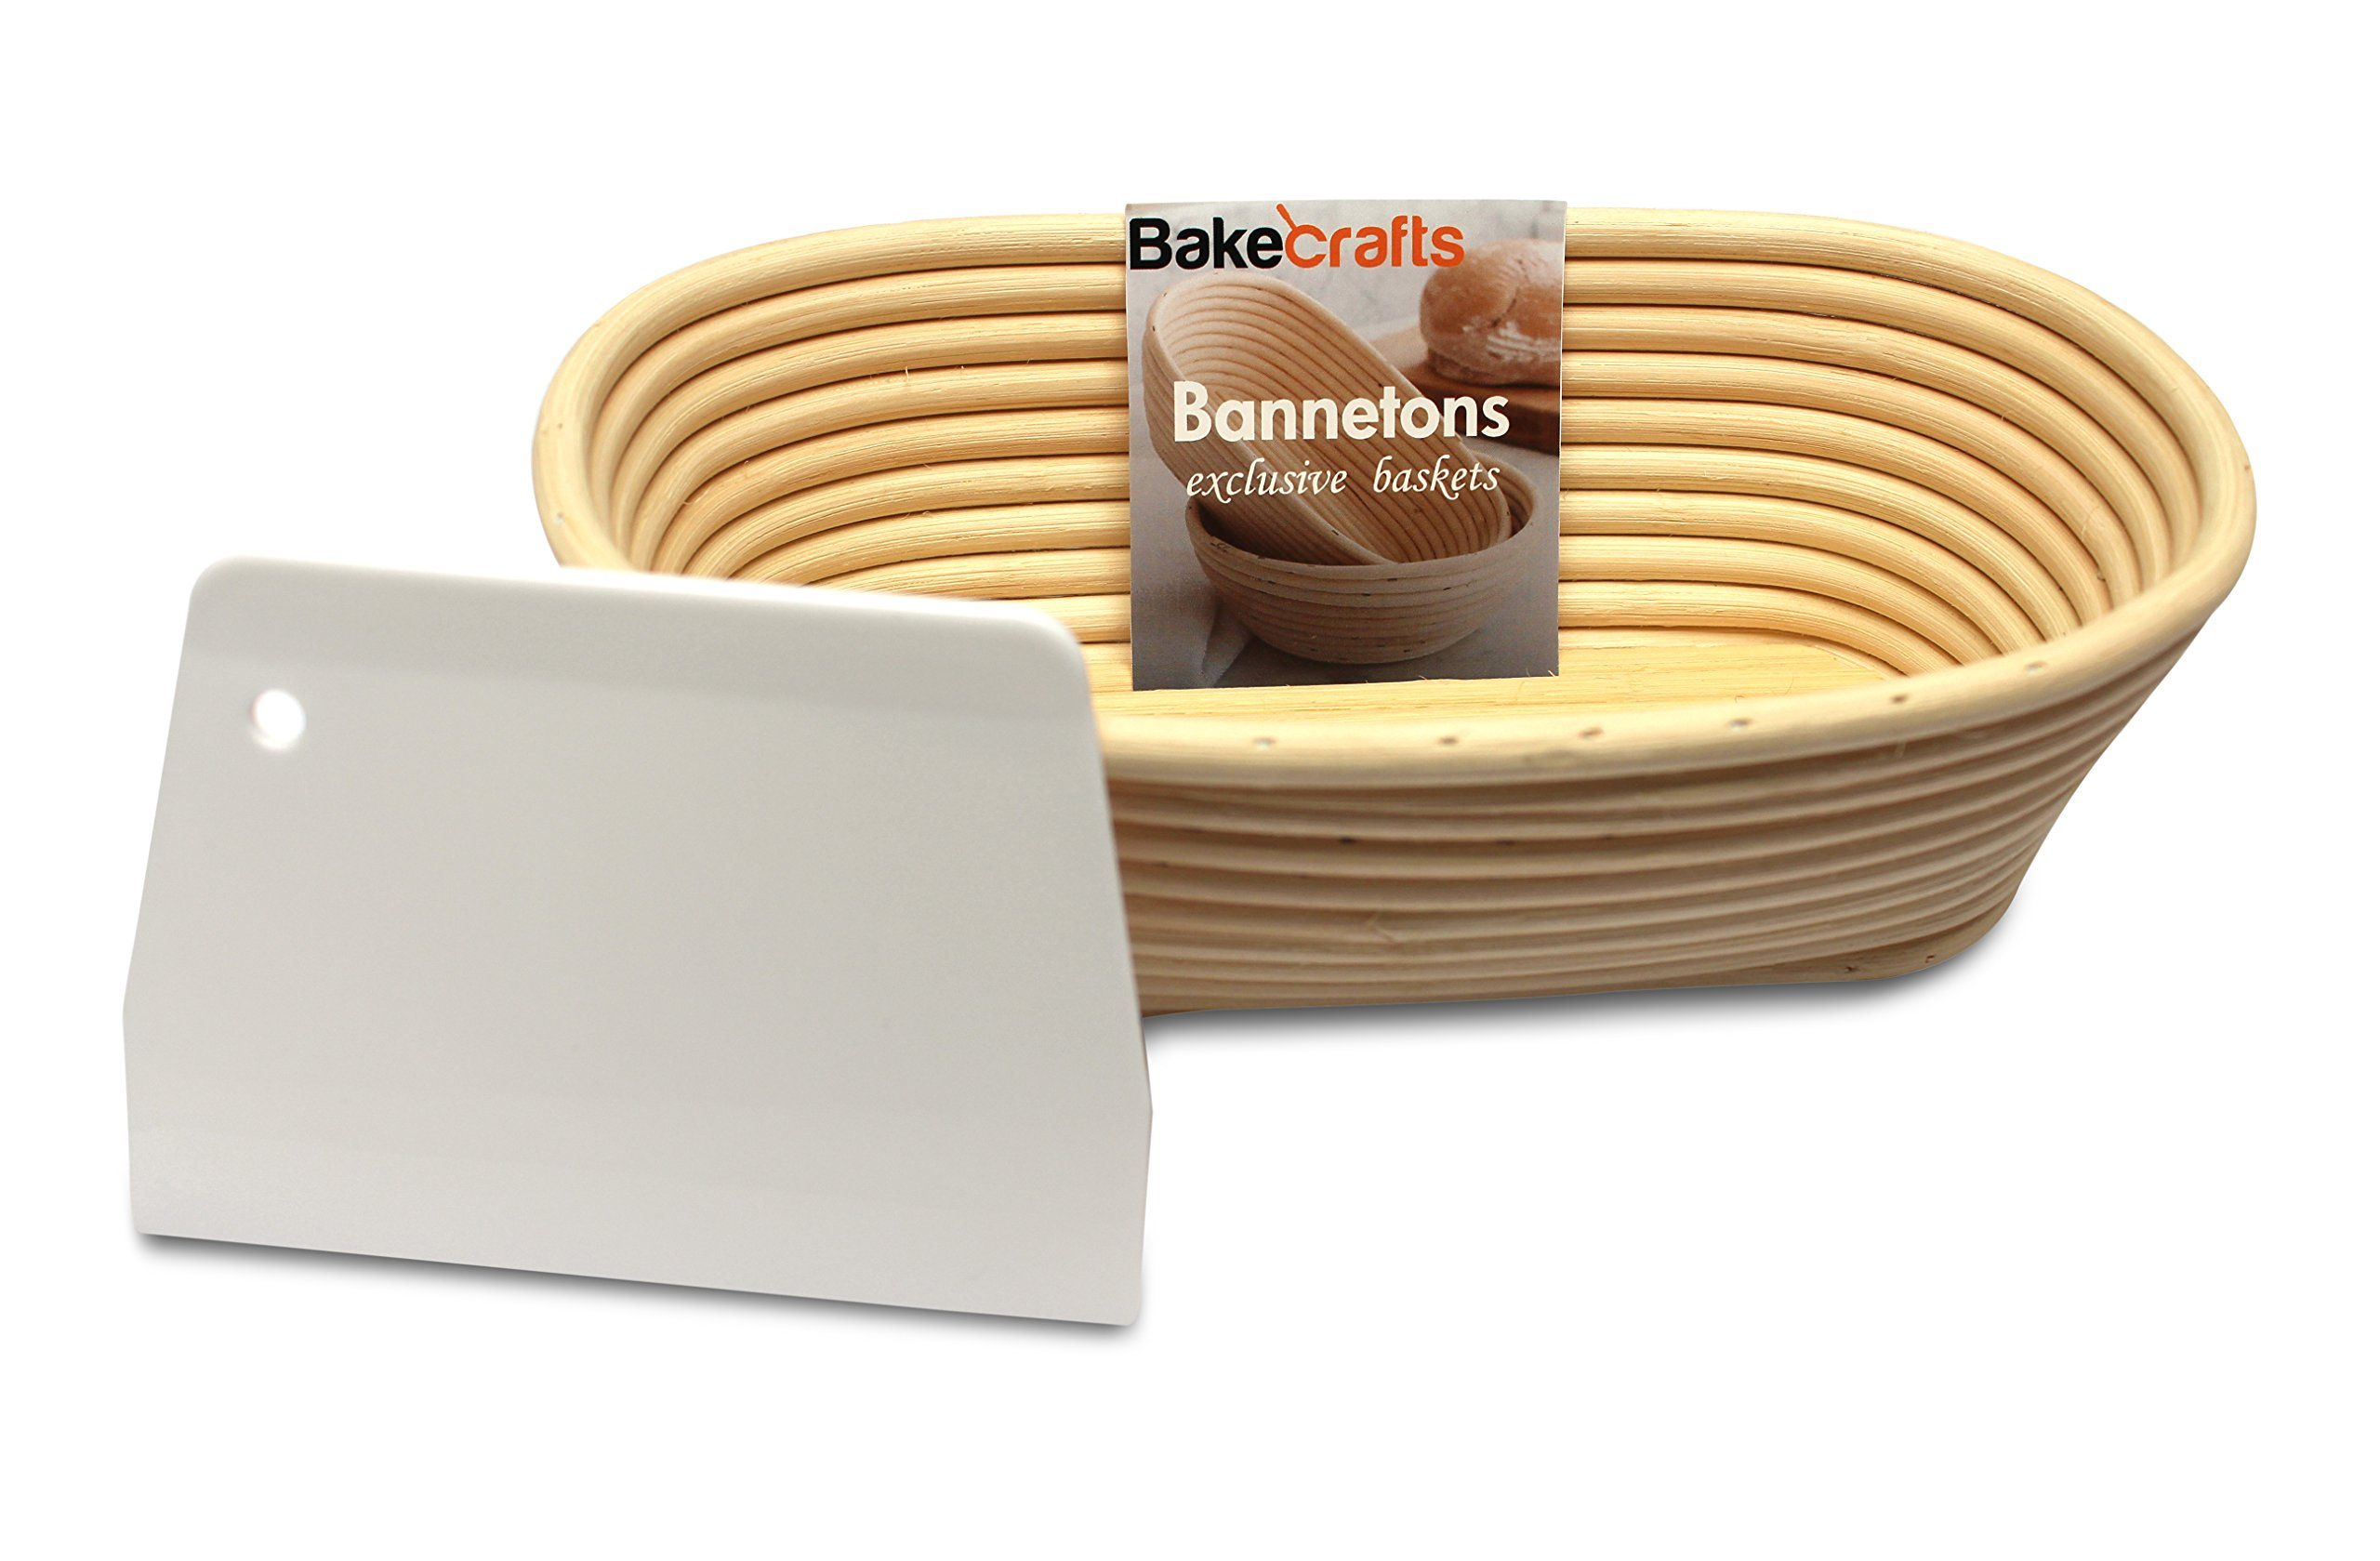 BakeCrafts - [10-inch] Oval Banneton Proofing Basket + FREE Dough Scraper | Oval Brotform Banneton Bread Proofing Rattan Basket Perfect For Homemade Artisan Bread